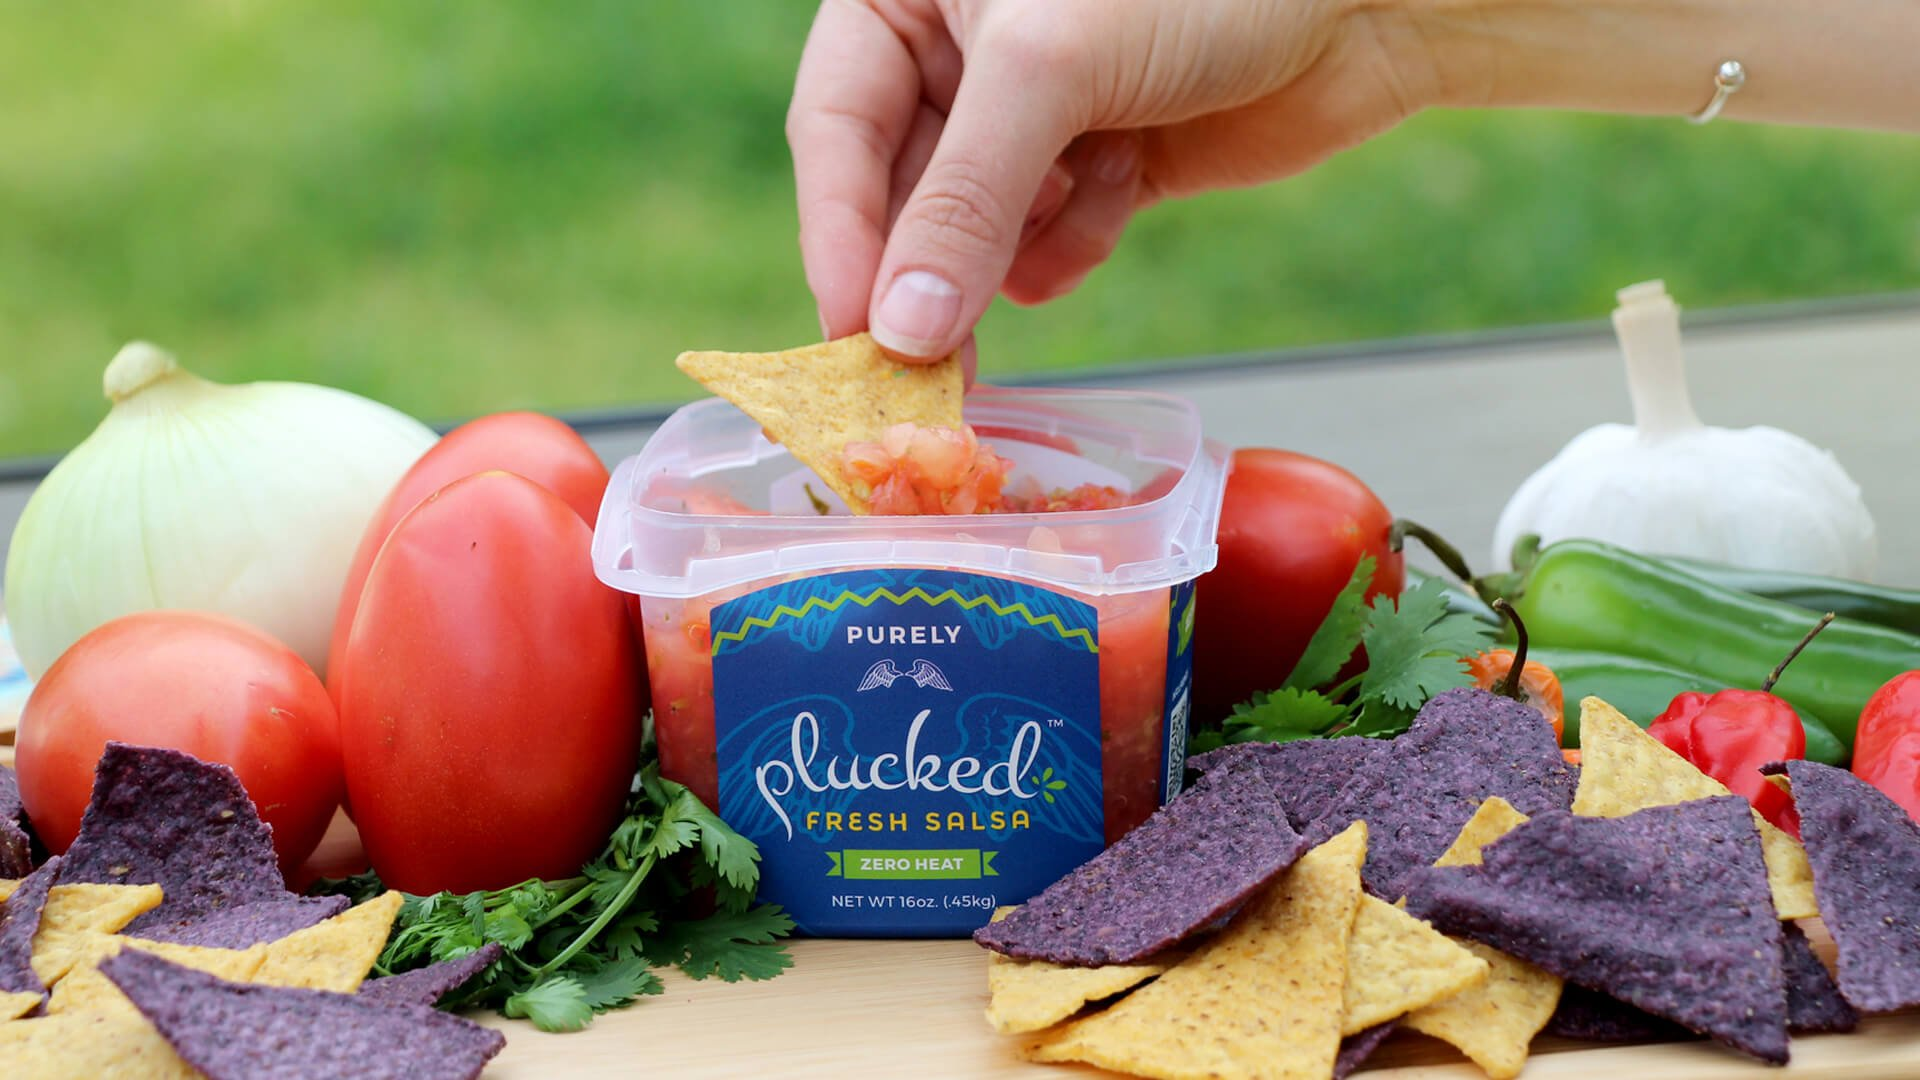 Purely Fresh Plucked Salsa with Fresh Vegetables